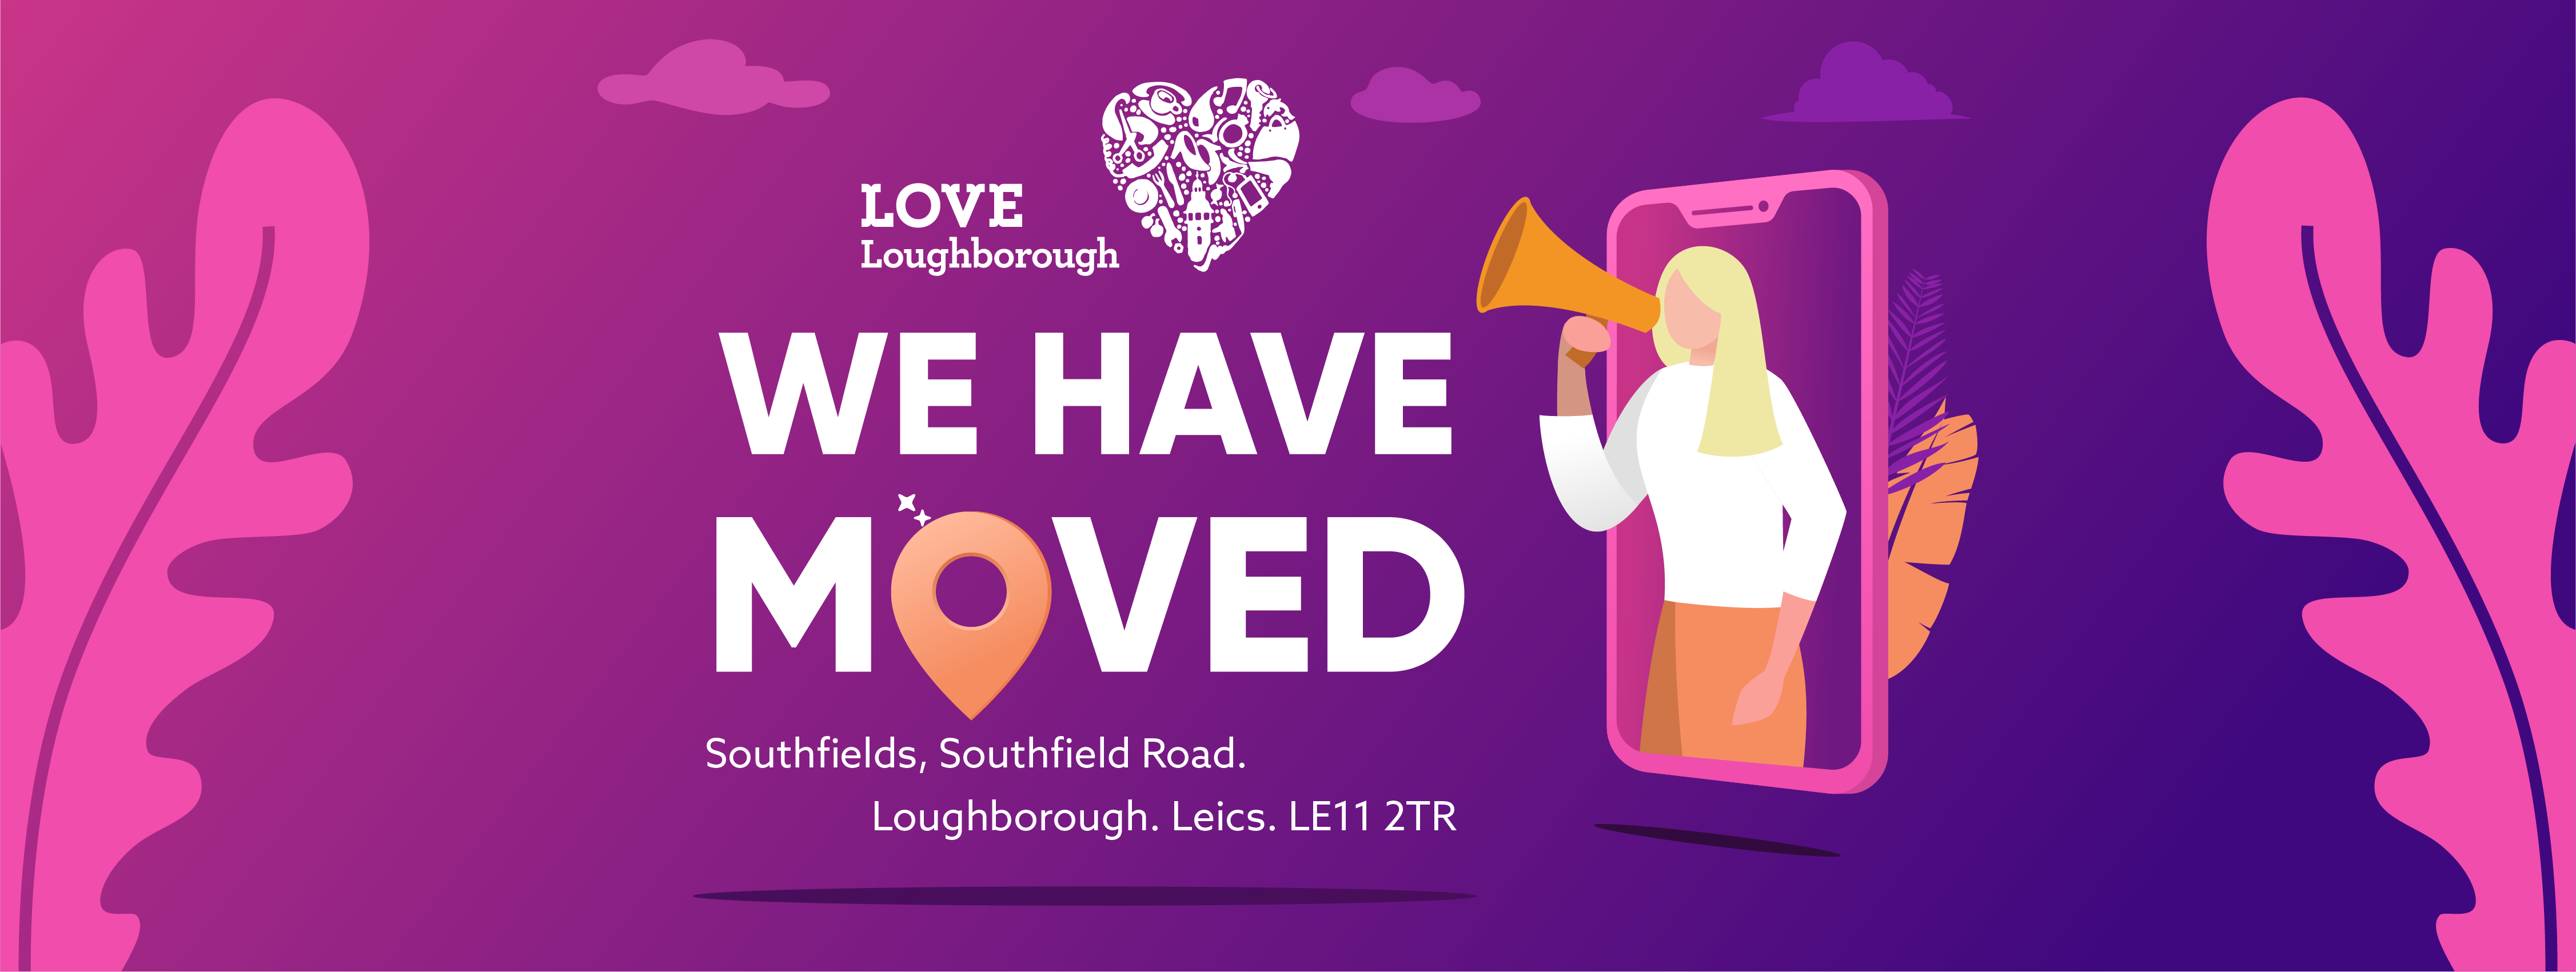 Charnwood Borough Council supports Love Loughborough through the effects of Covid-19